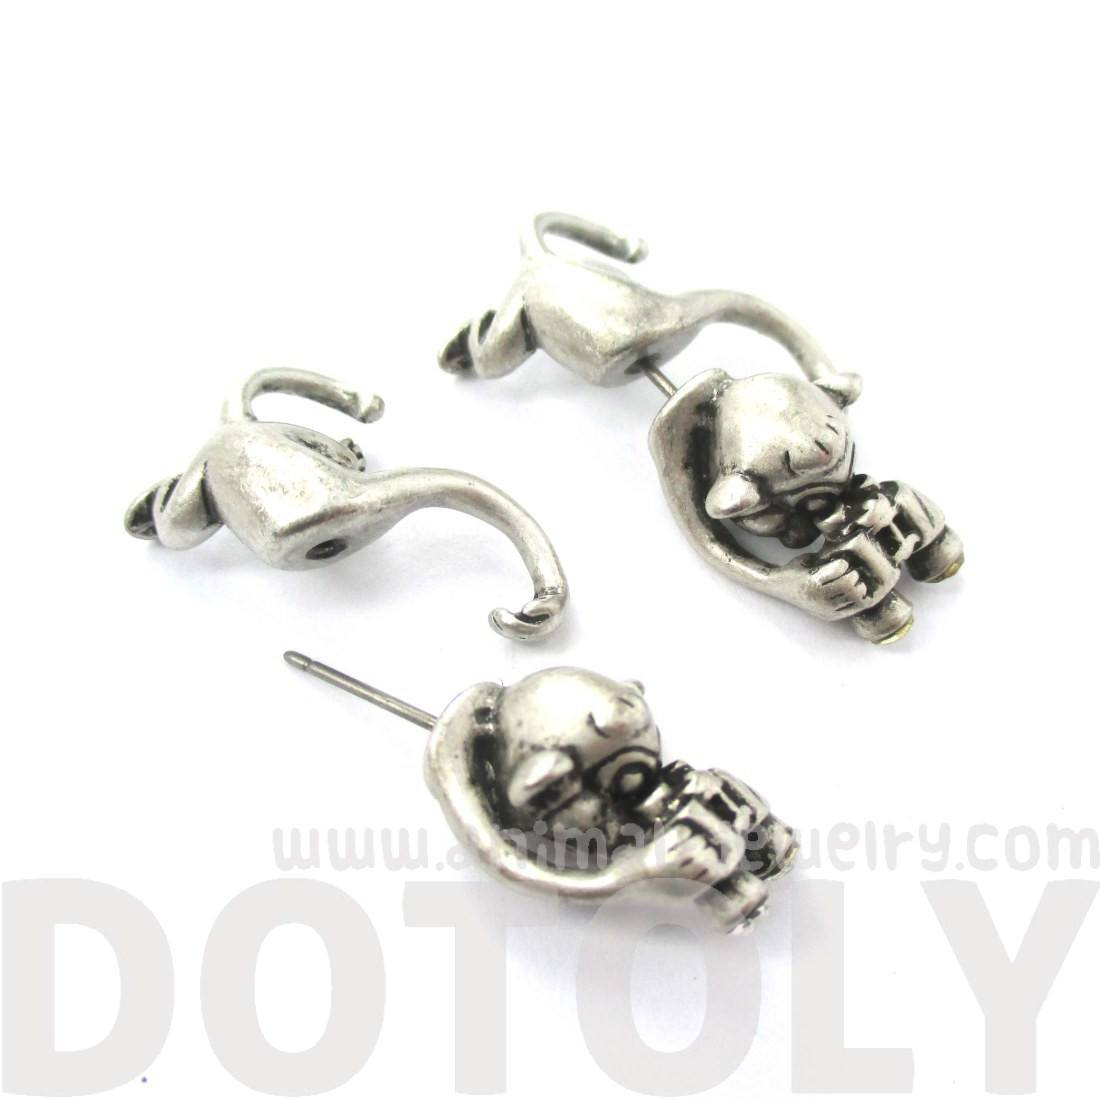 Monkey with Binoculars Curious George Shaped Stud Earrings in Silver